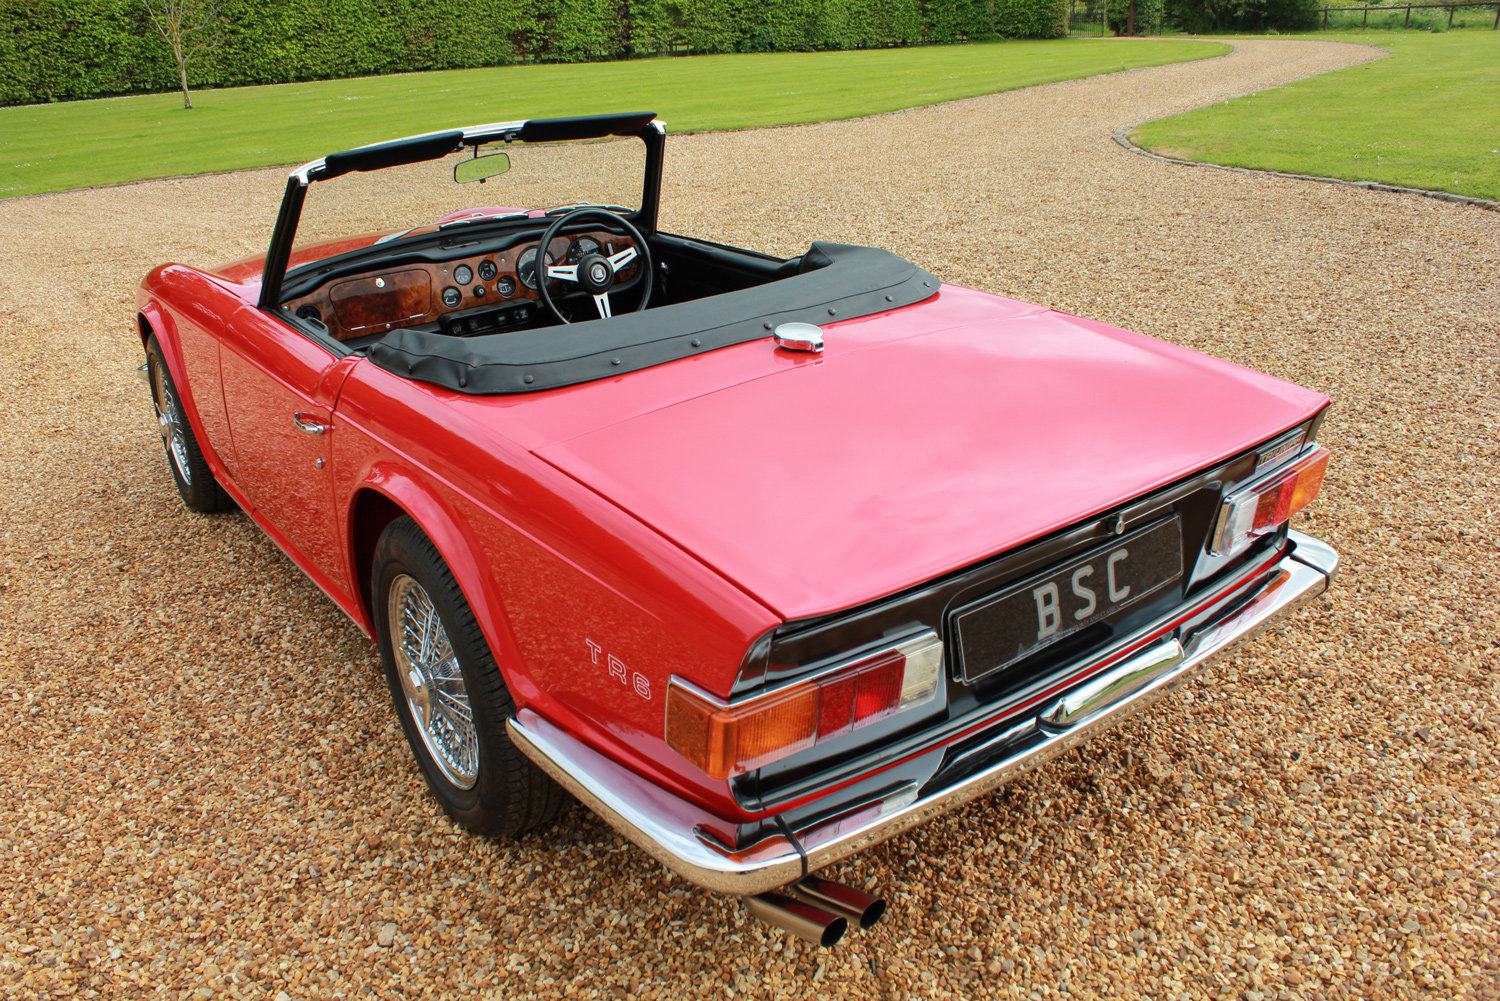 1971 TRIUMPH TR6 - BEST AVAILABLE For Sale (picture 8 of 12)